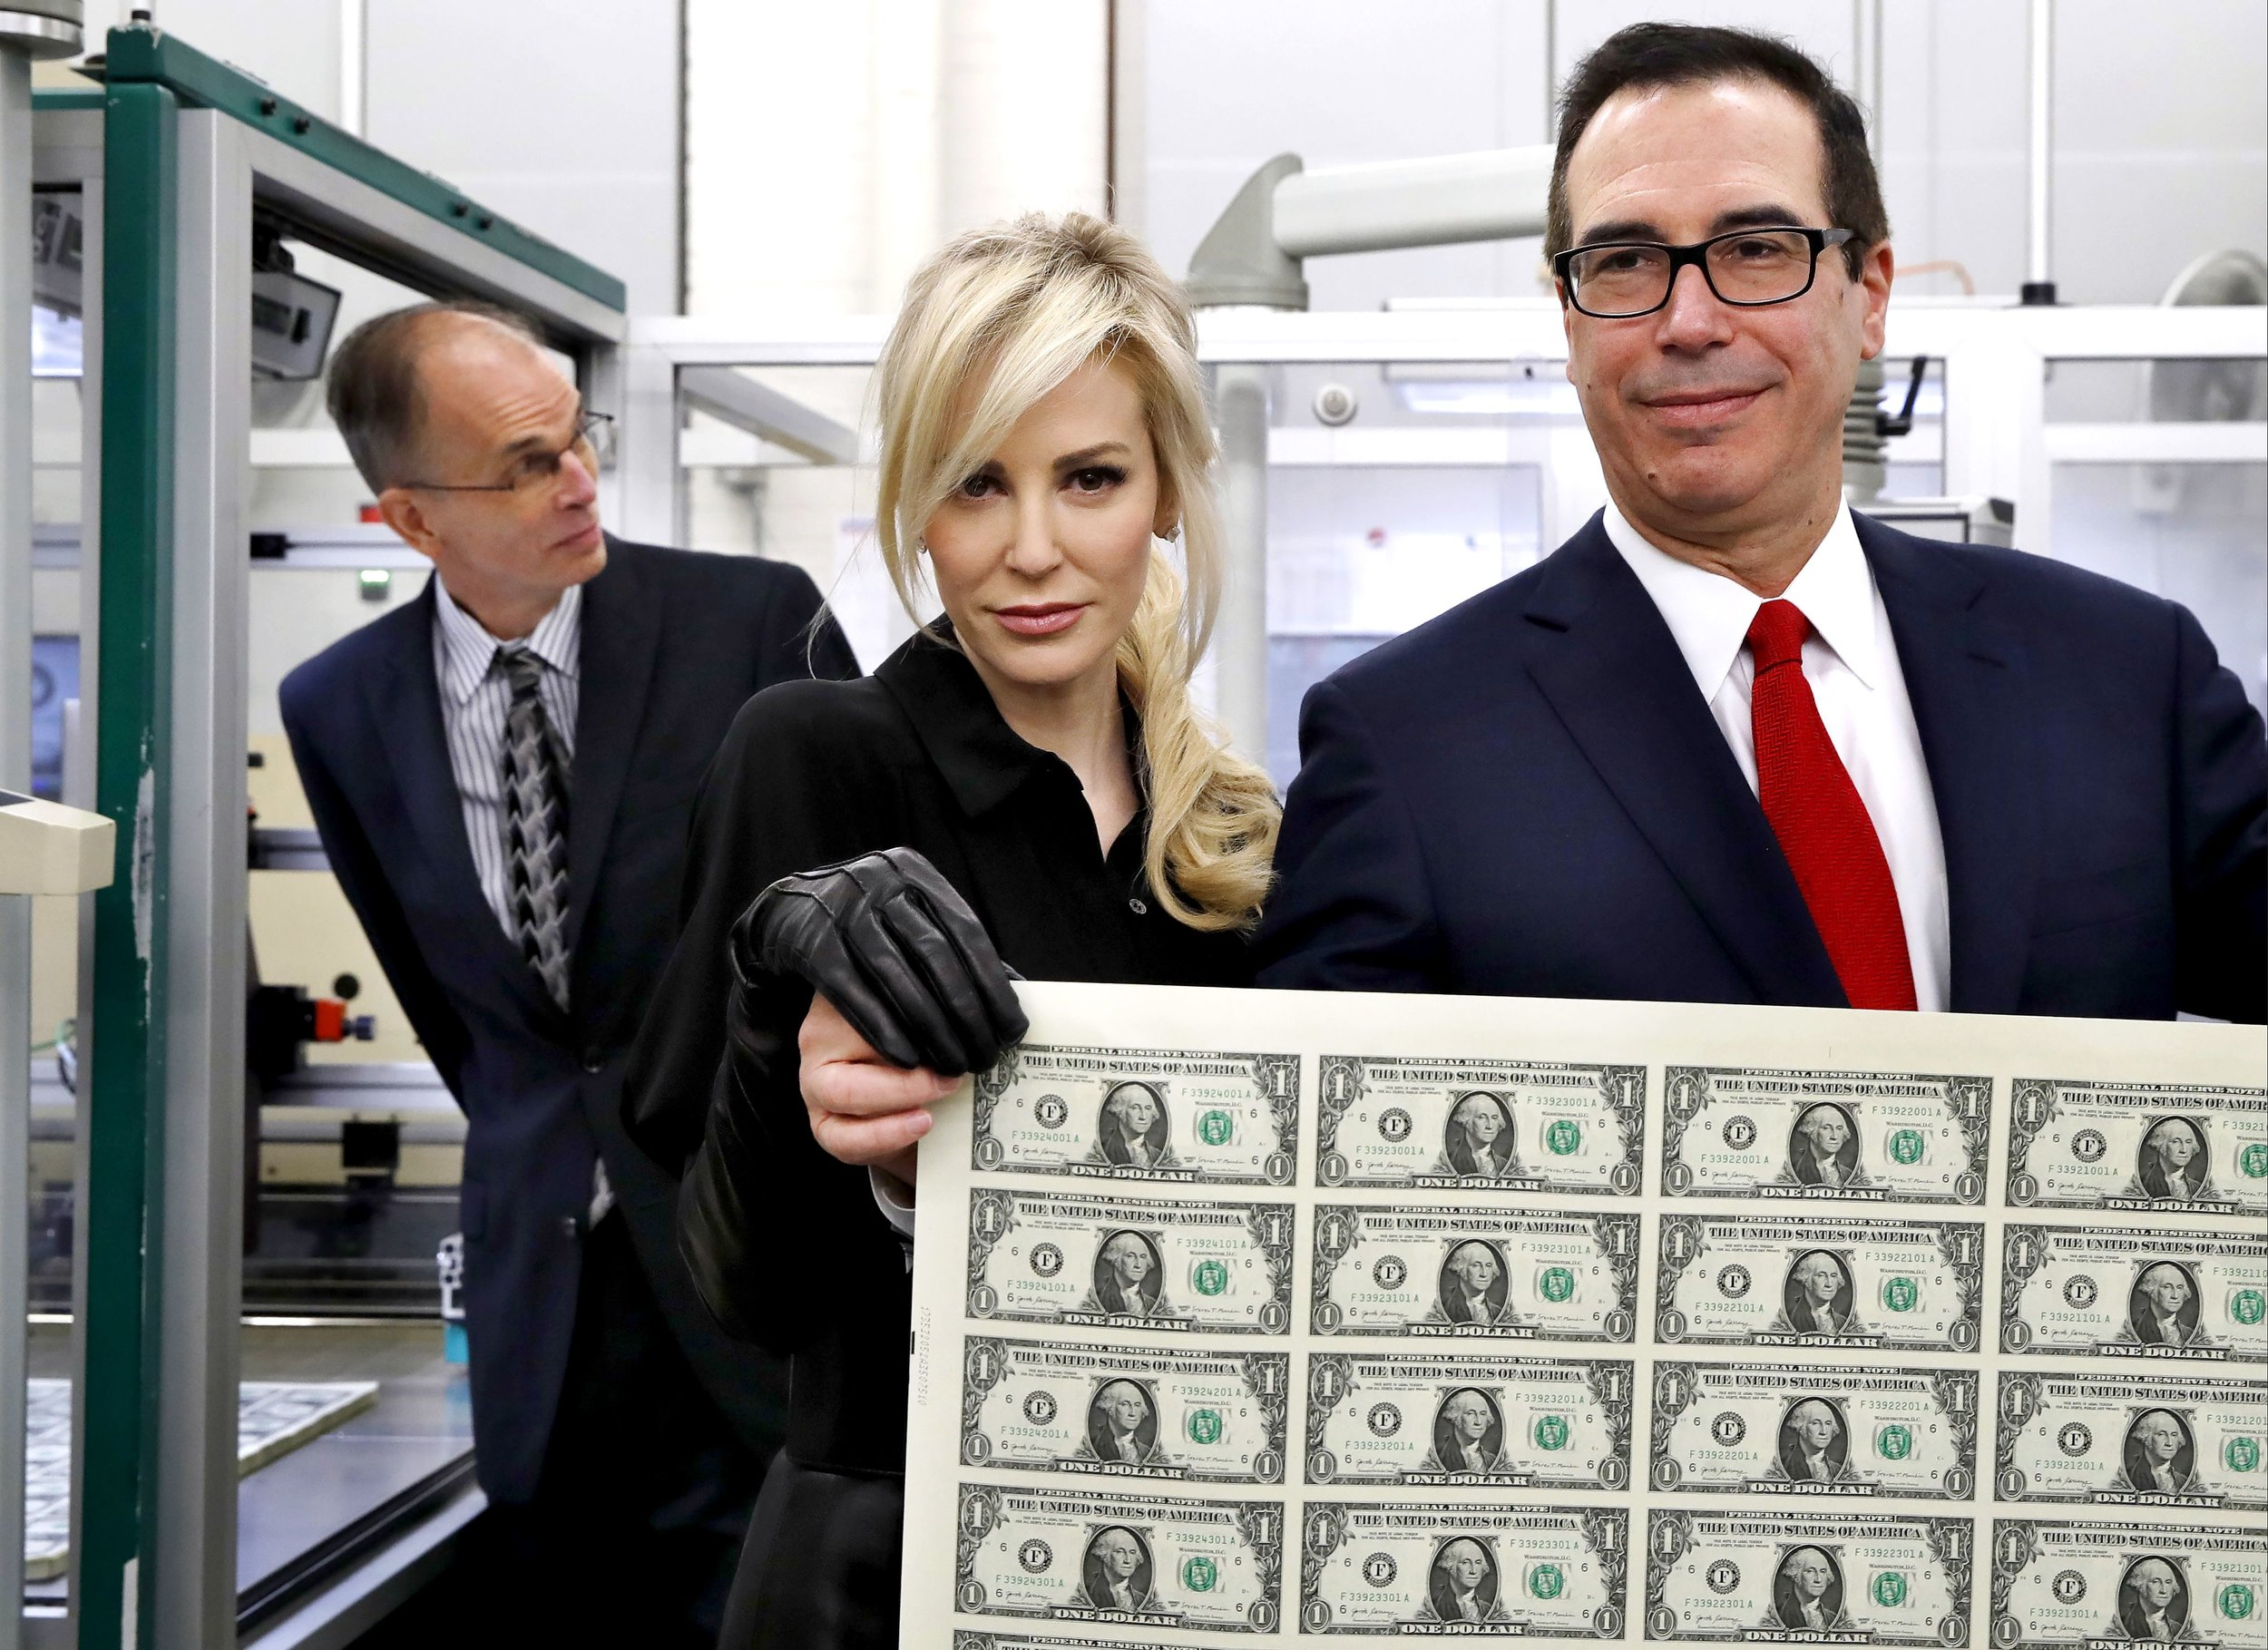 Steven Mnuchin, Secretary of the Treasury posing as a Bond villain.